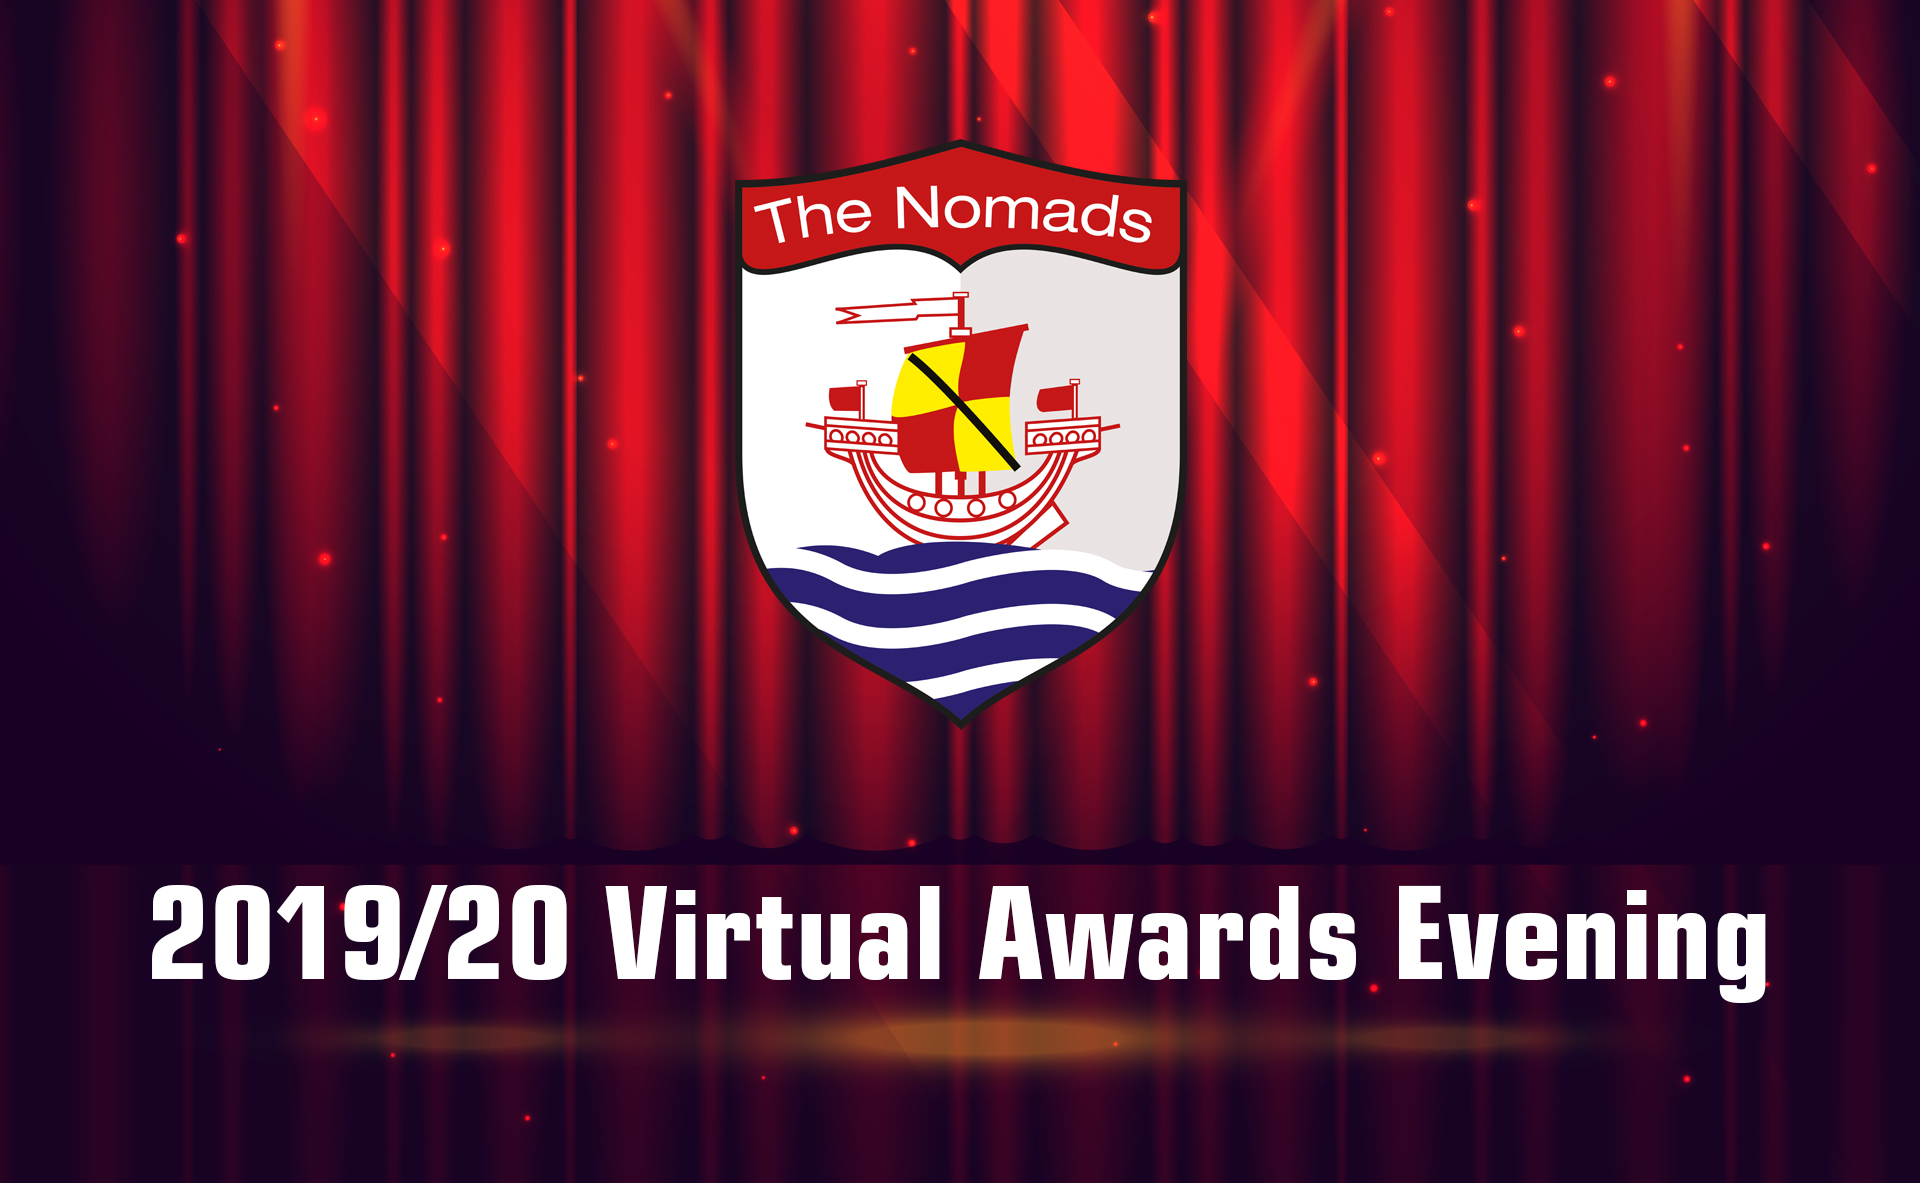 Connah's Quay Nomads 2019/20 Virtual Awards Evening